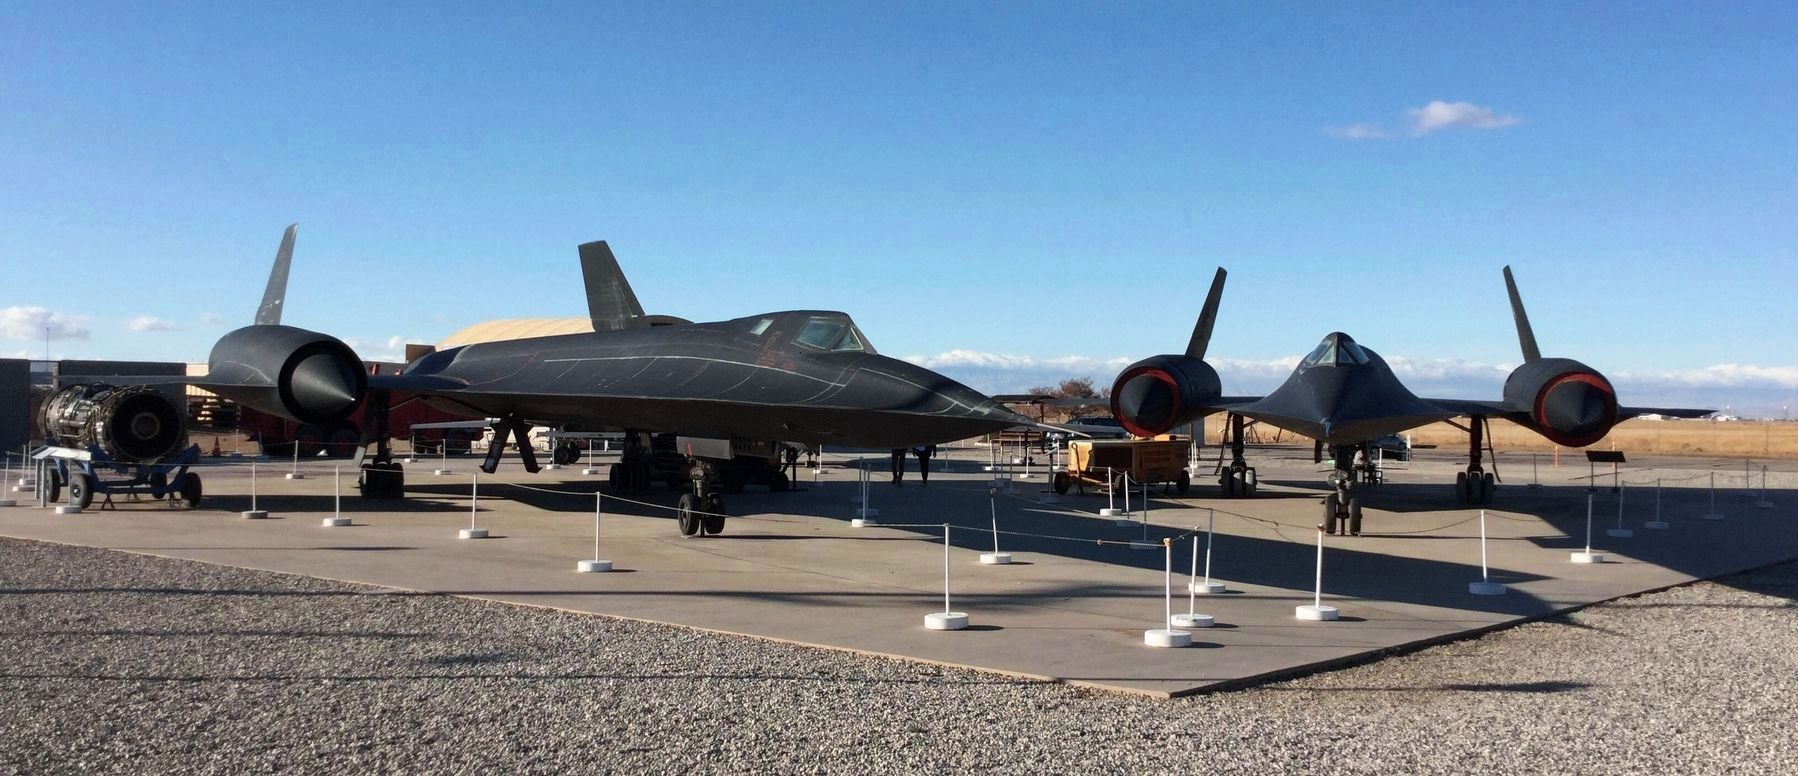 Blackbird Aircraft image. Click for full size.